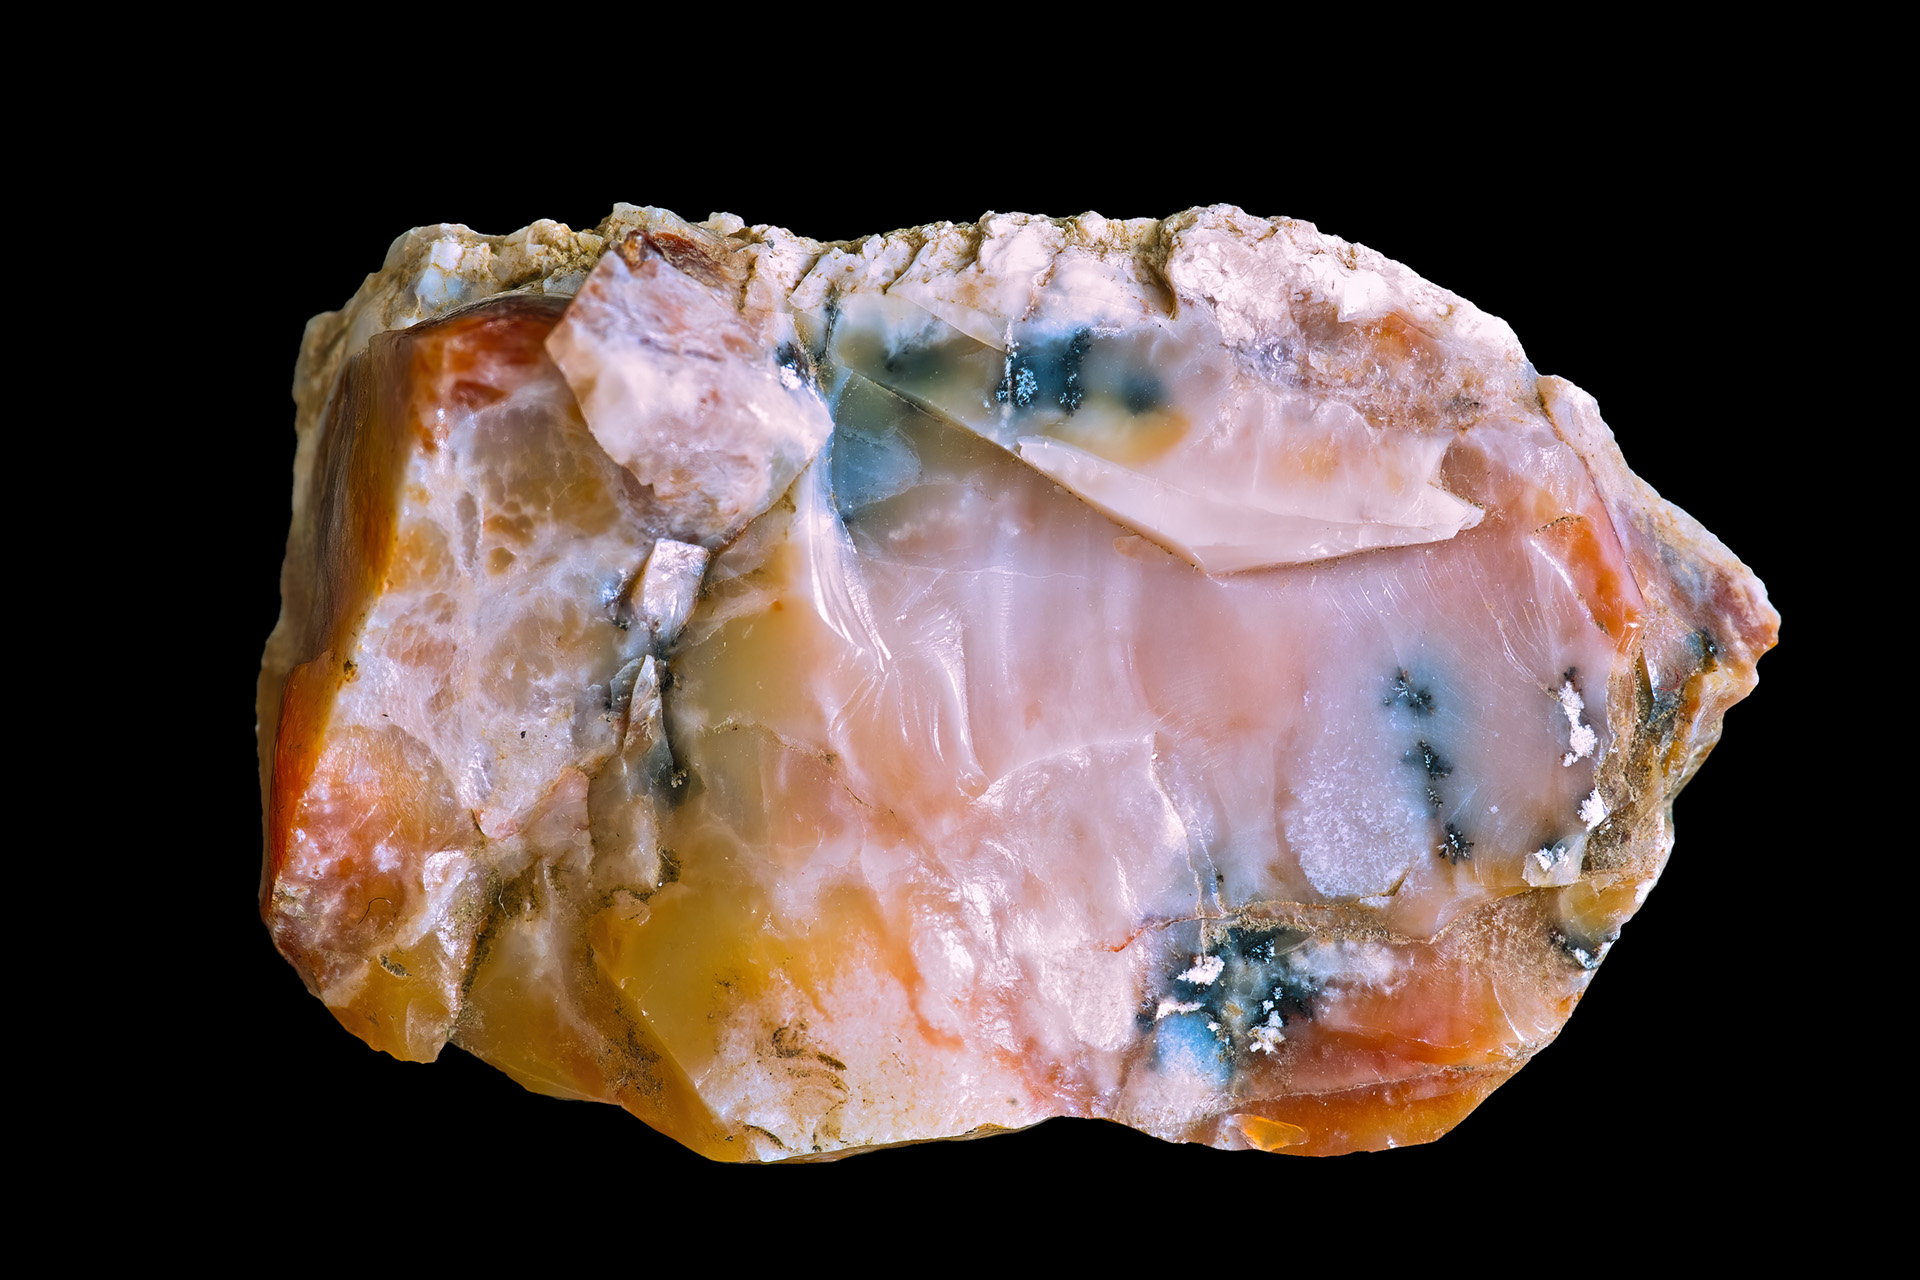 http://upload.wikimedia.org/wikipedia/commons/8/8c/Polychromic_opal_Bohouskovice.jpg